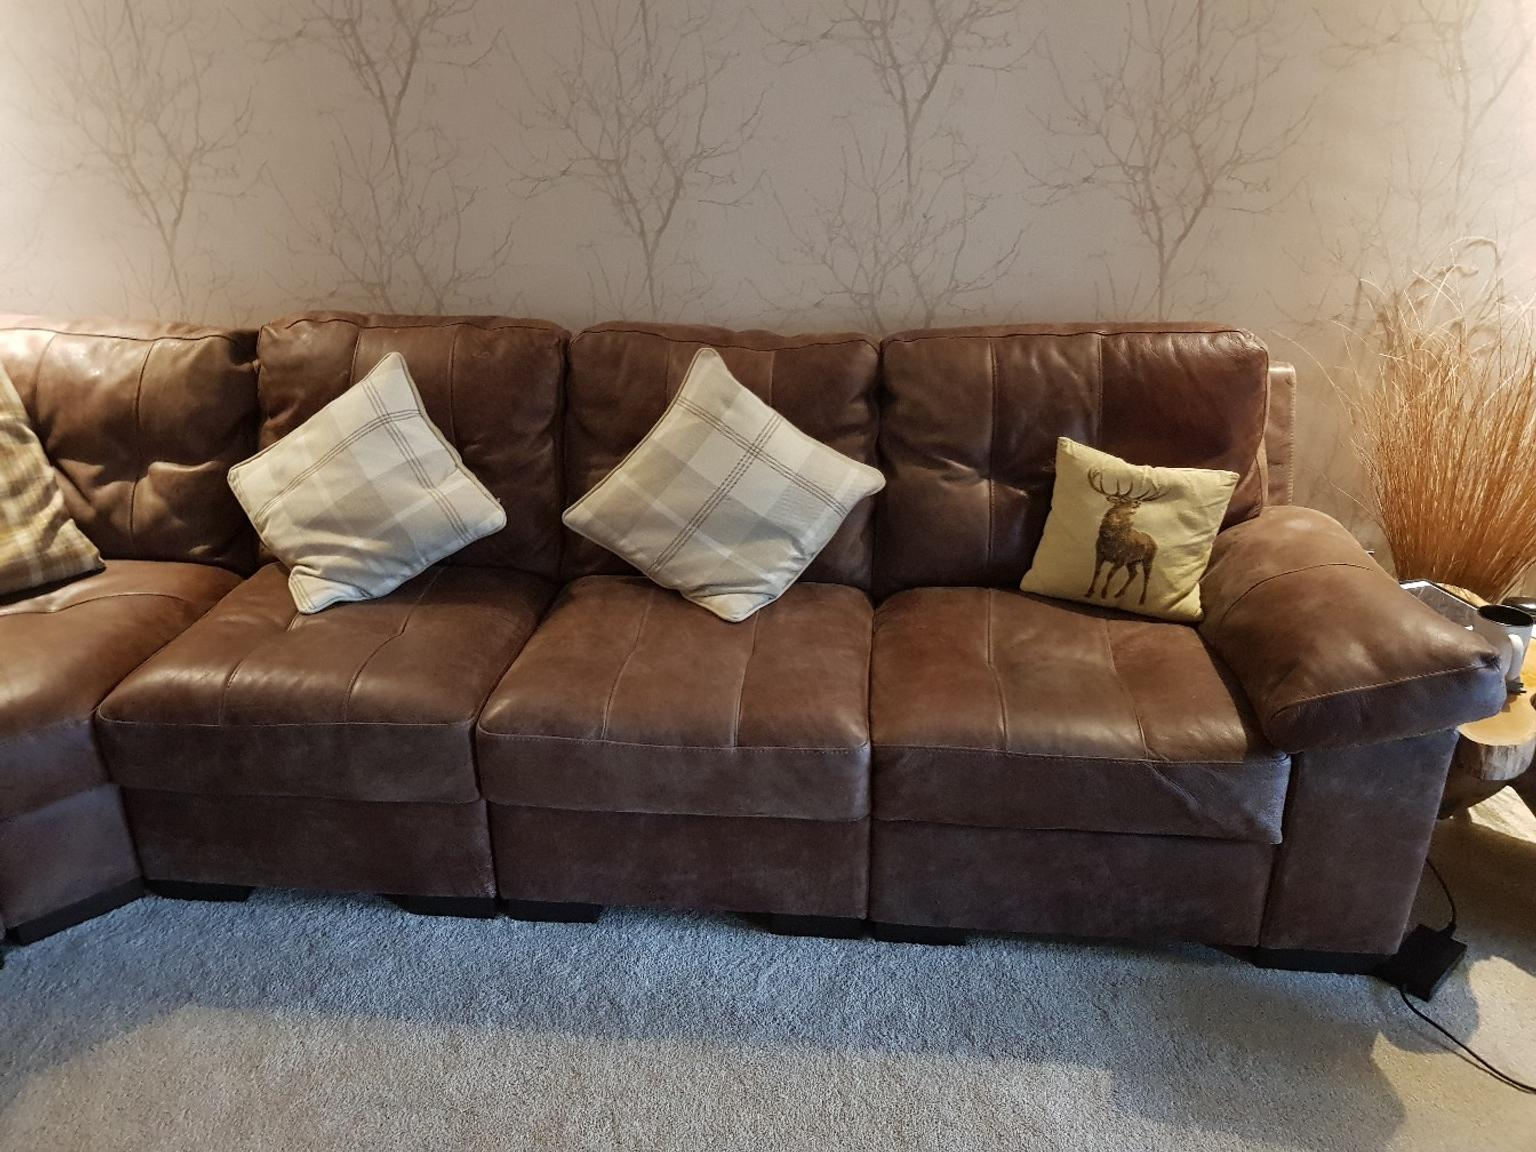 Dfs Rafael Sofa Natural Leather In De11 Newhall For 1 000 00 For Sale Shpock